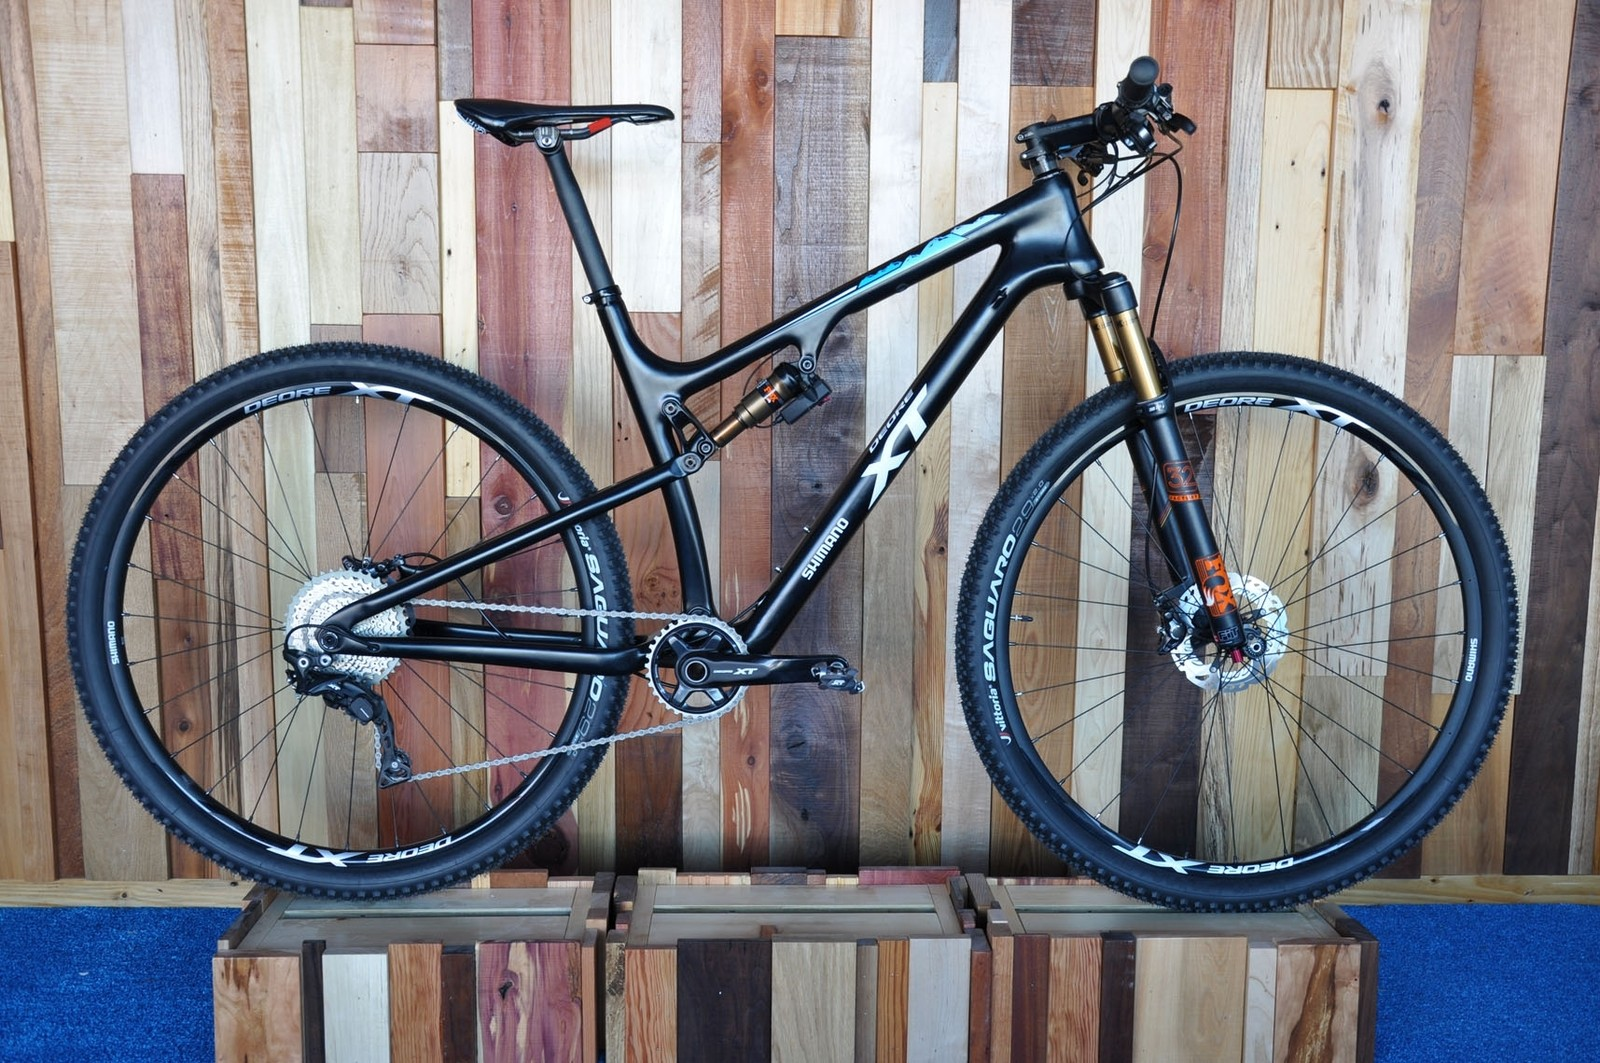 4c670483e8c First Look: 2016 Shimano Deore XT - Mountain Bikes Feature Stories - Vital  MTB